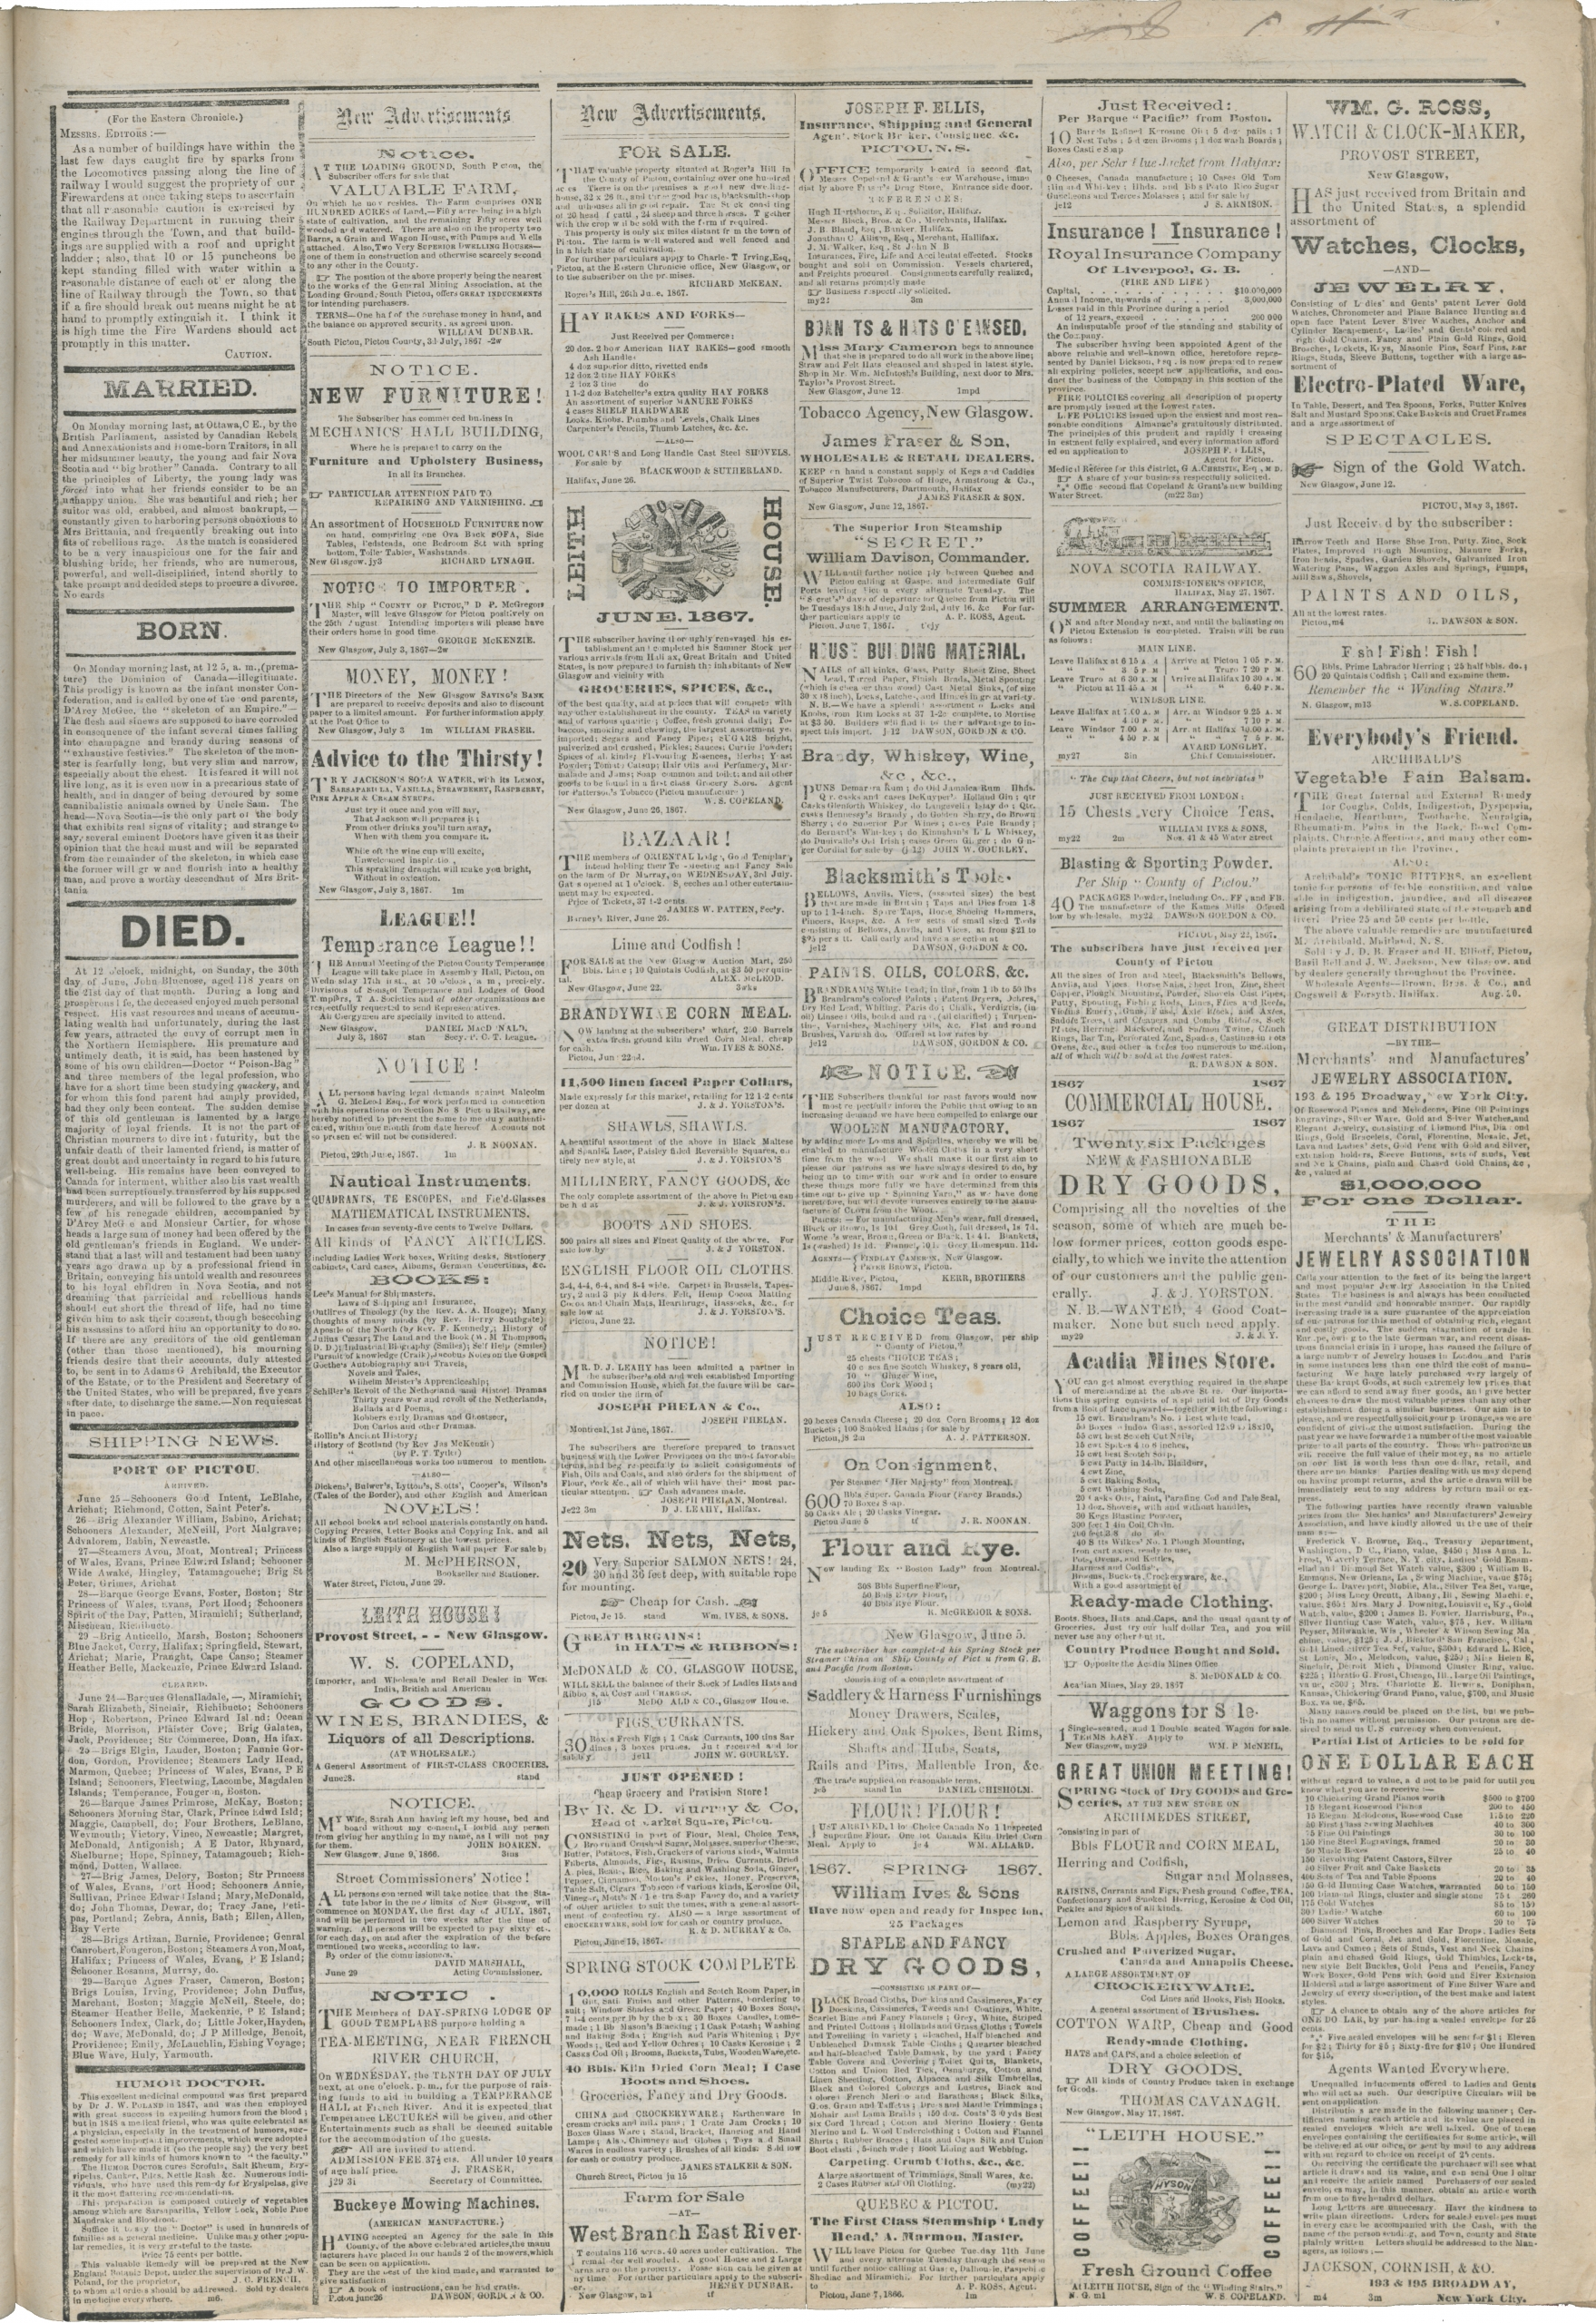 a page of a newspaper from 1867.